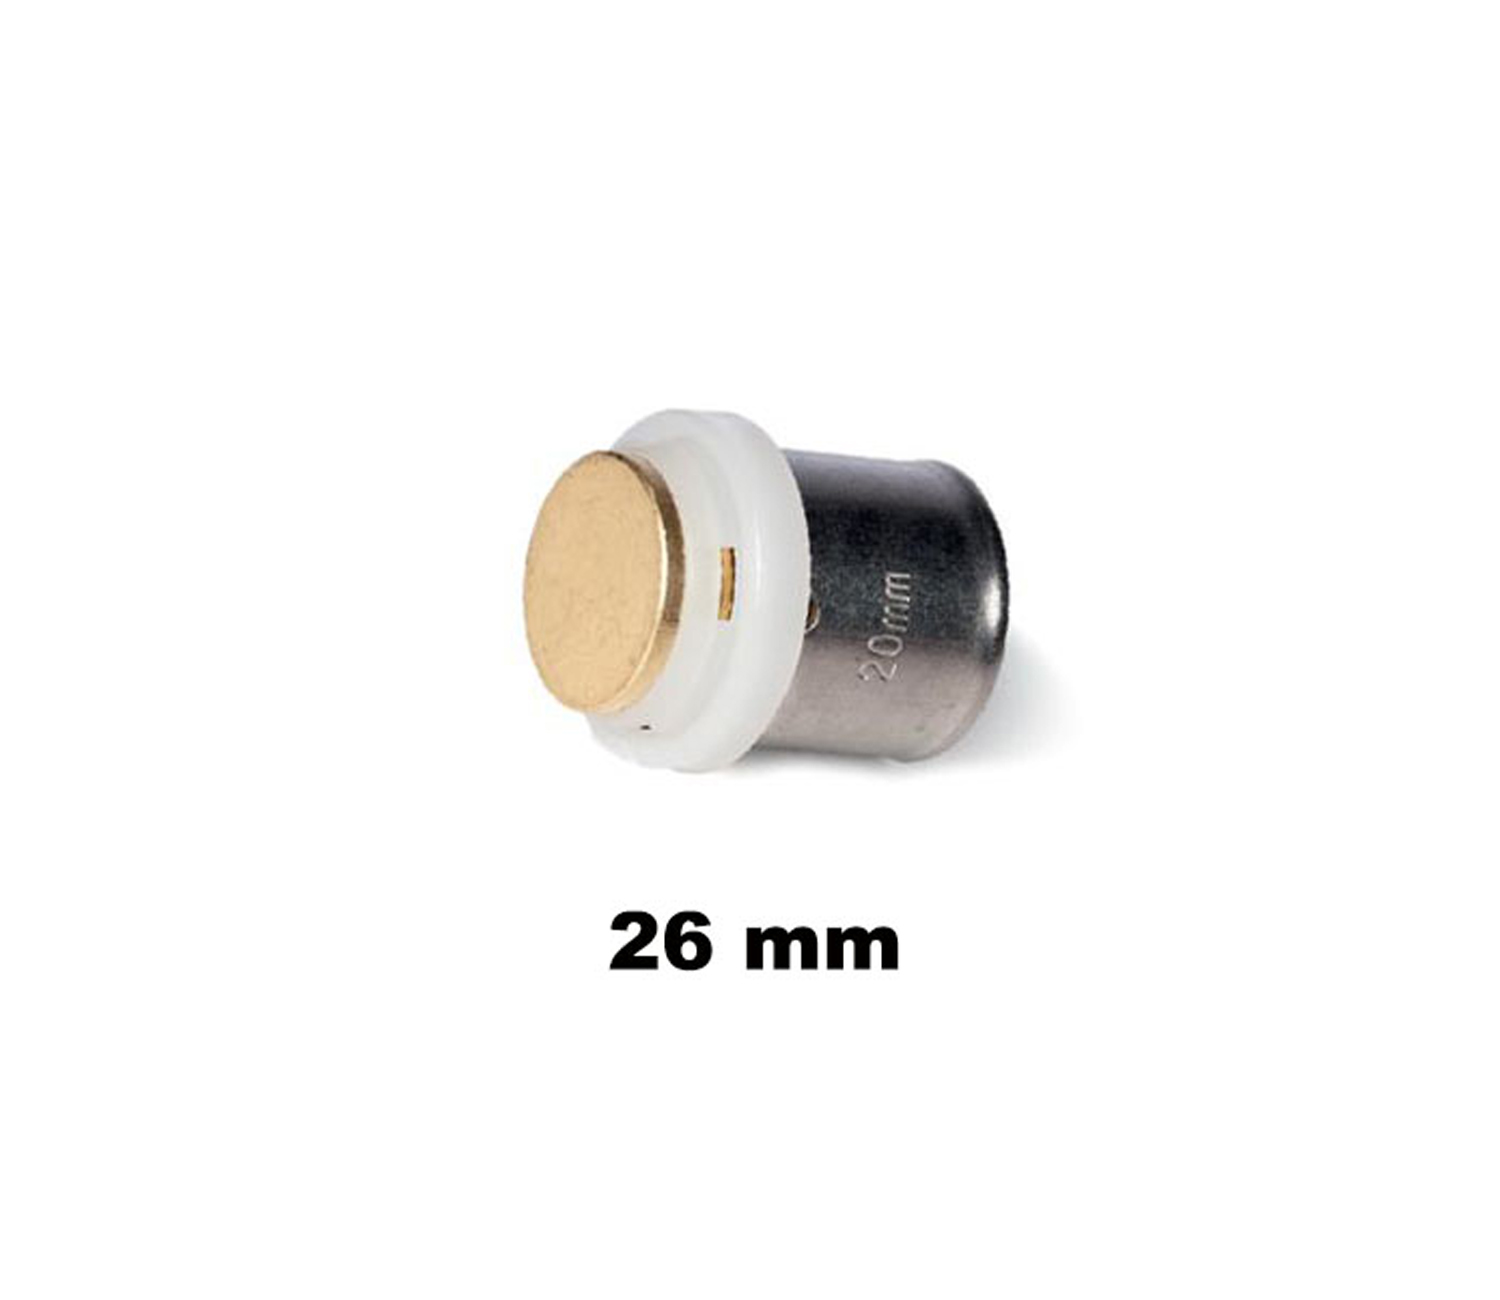 Stop End 26mm (51003)